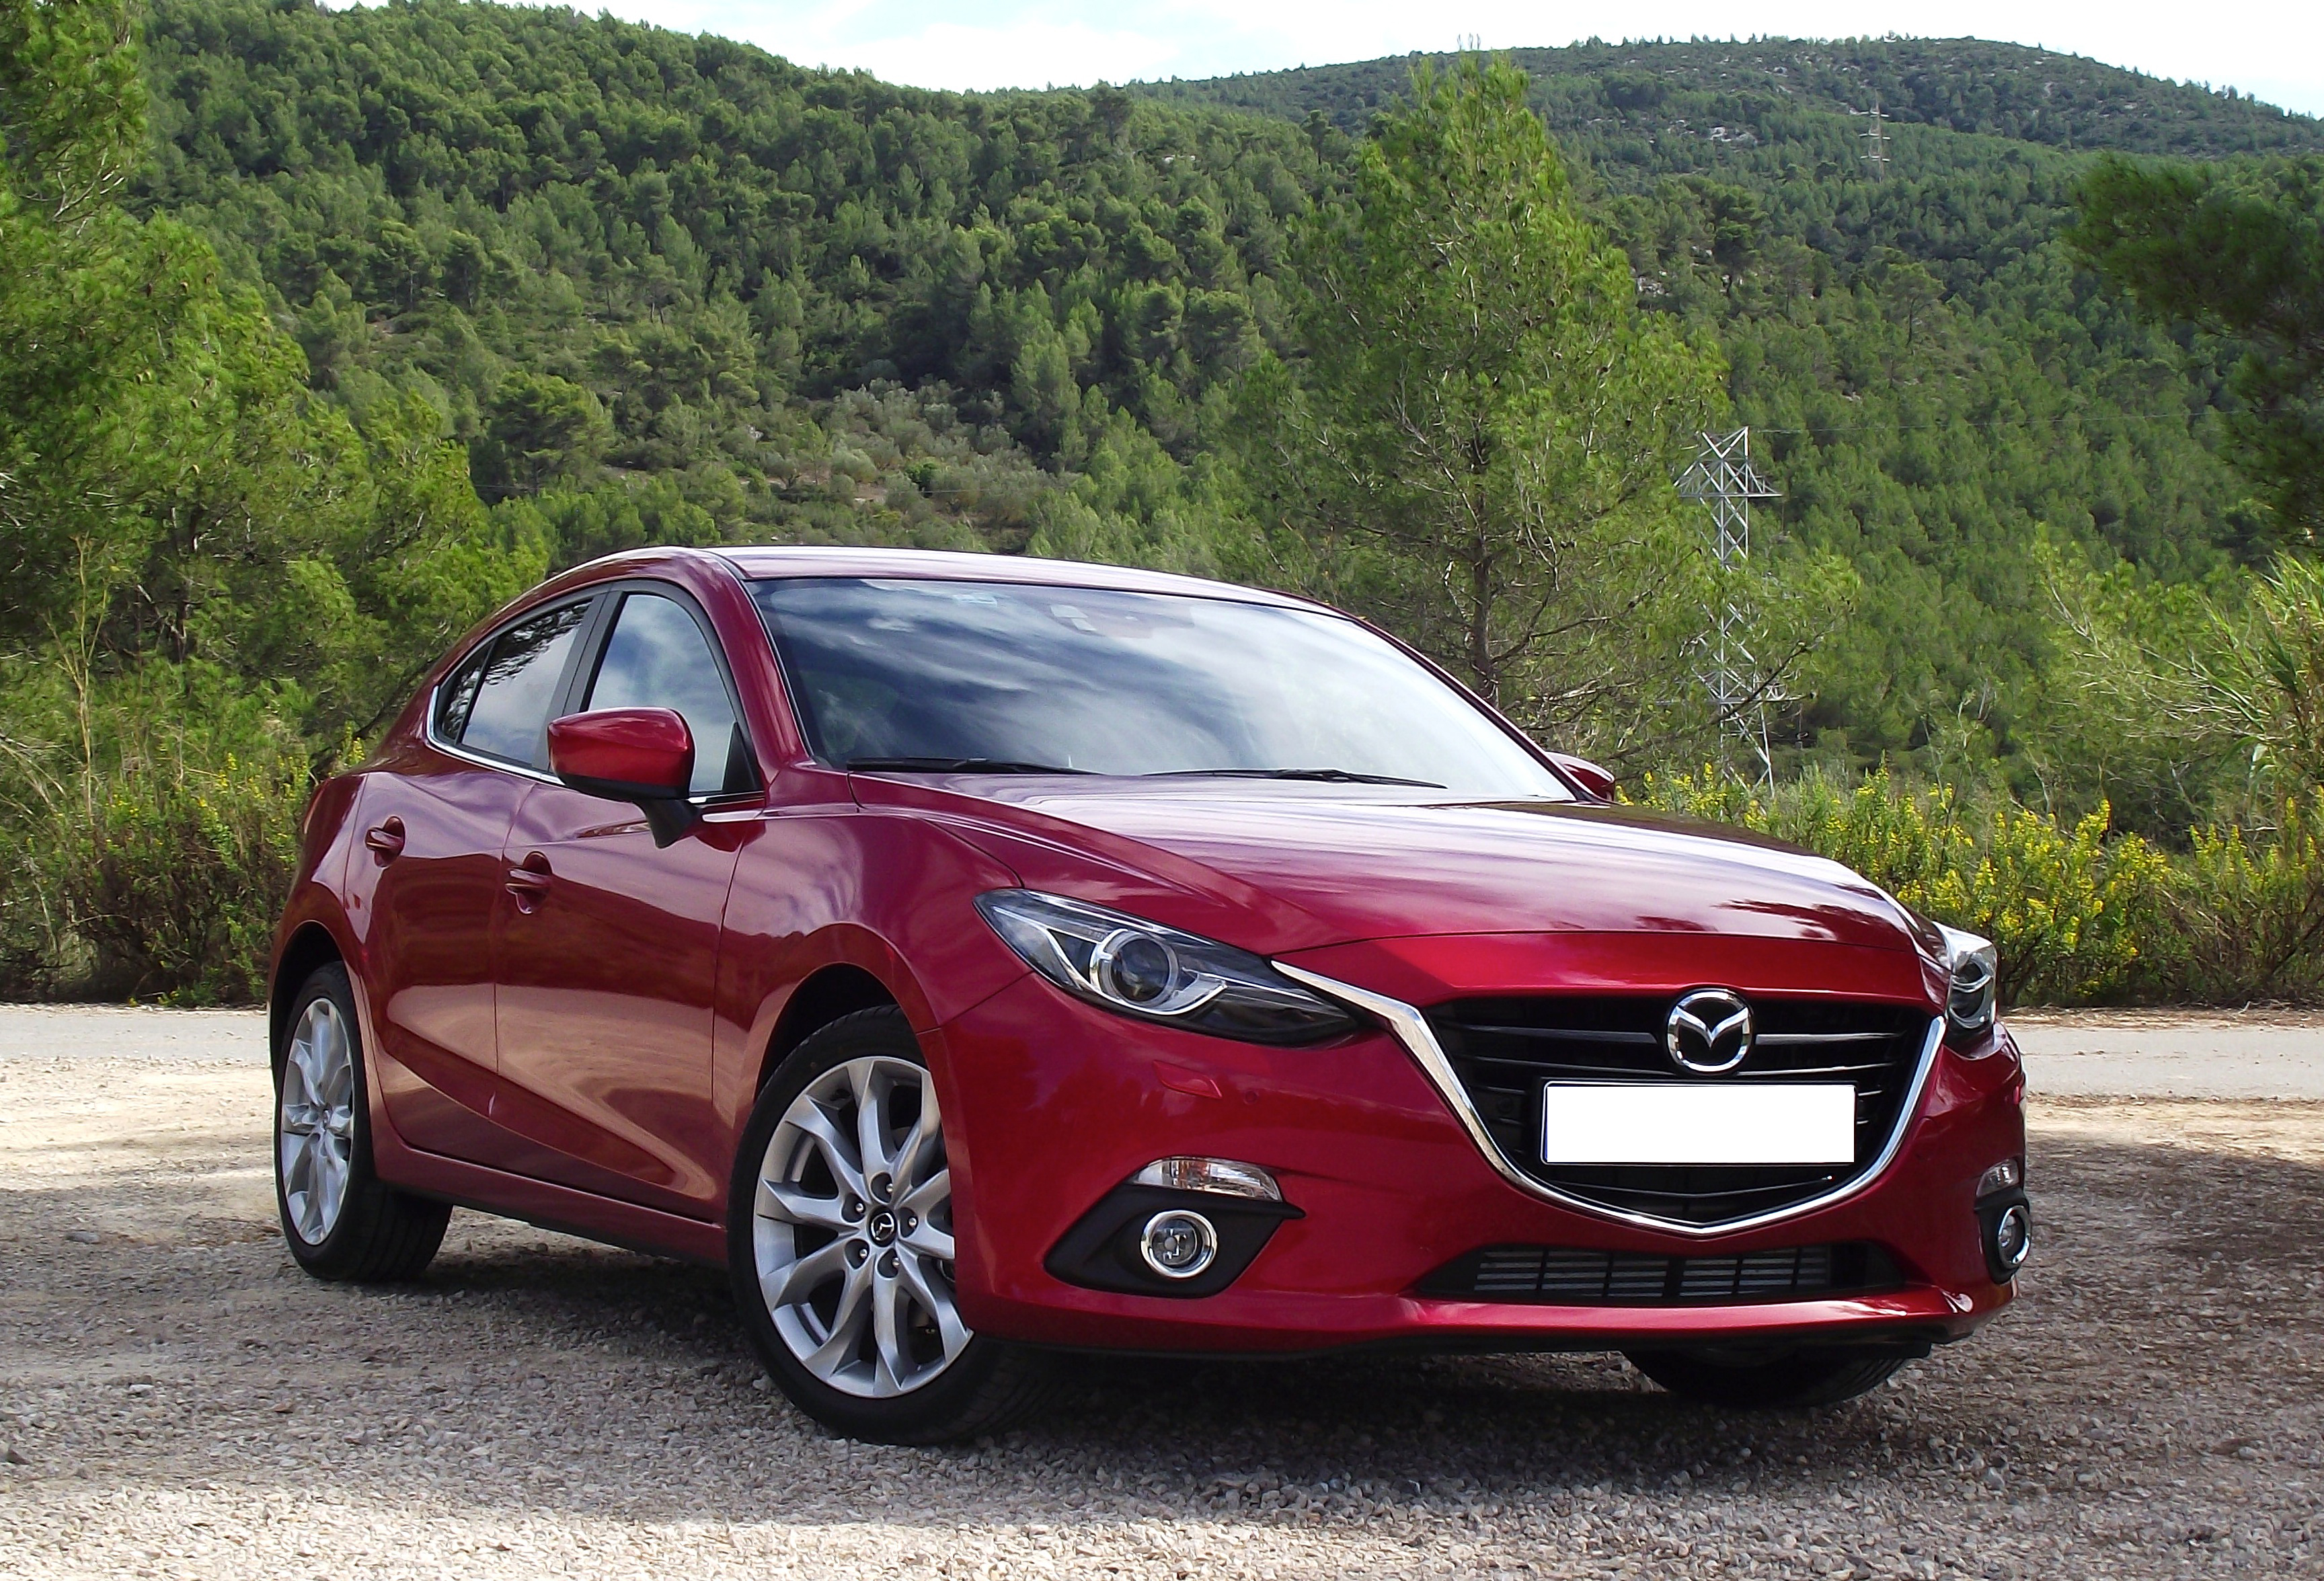 Mazda 3 Service Manual: Engine RemovalInstallation Mzr 2.3 Disi Turbo